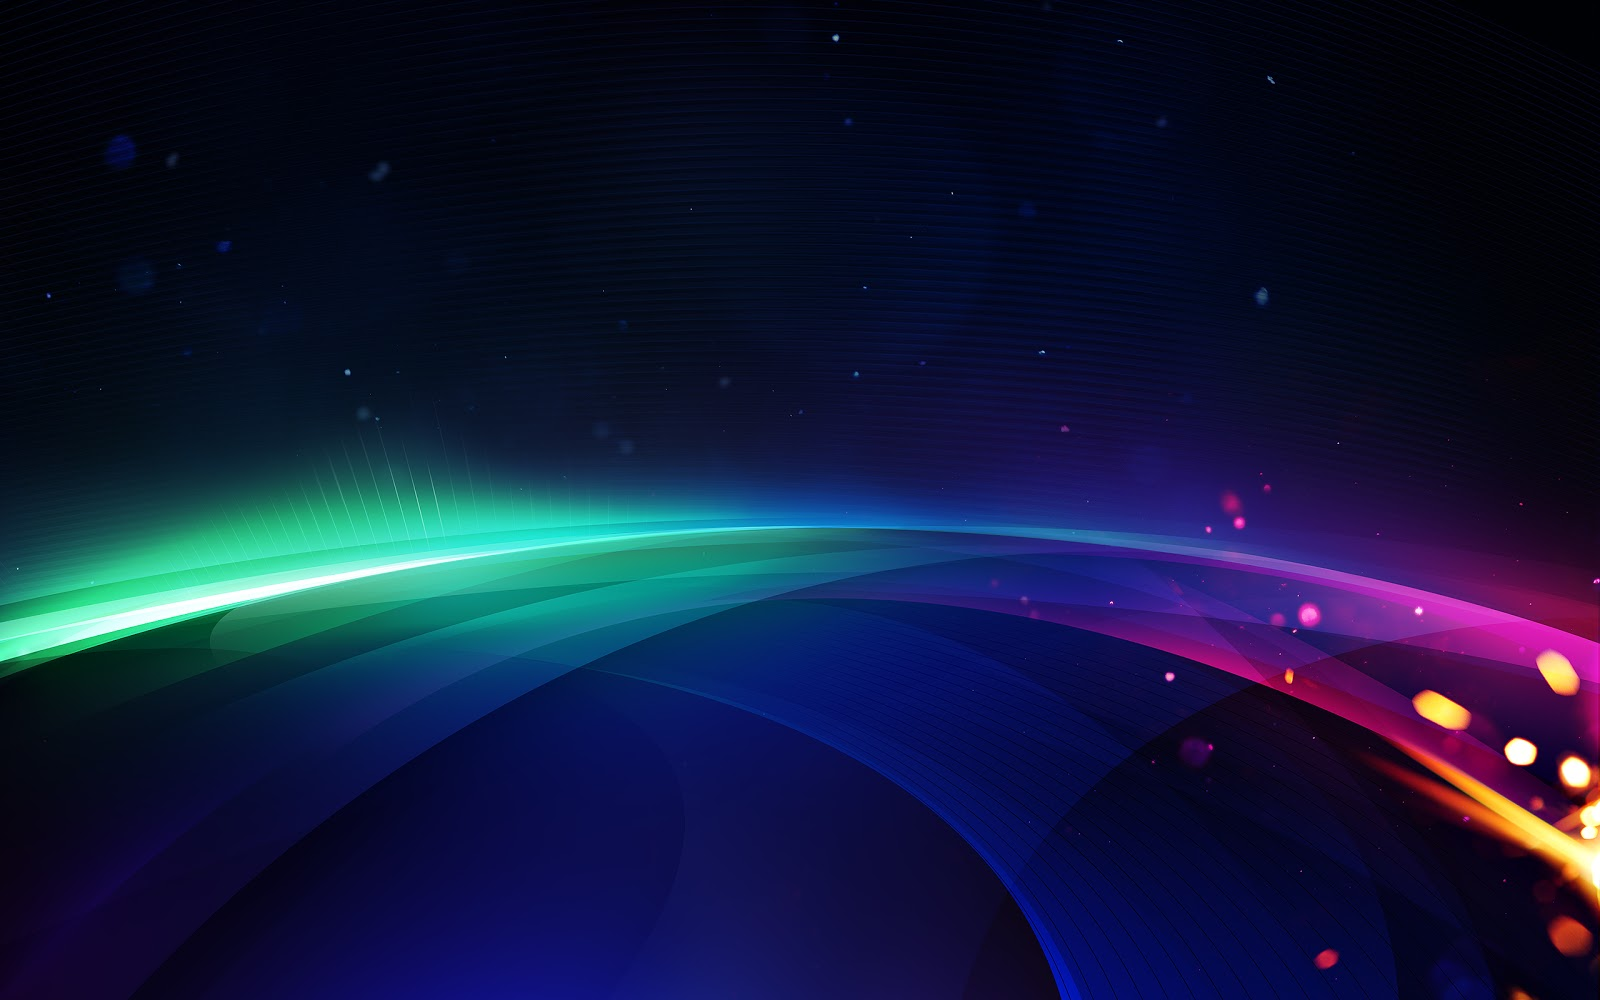 new windows 8 wallpapers | windows 8 hd new wallpapers 2012 - wallpapers